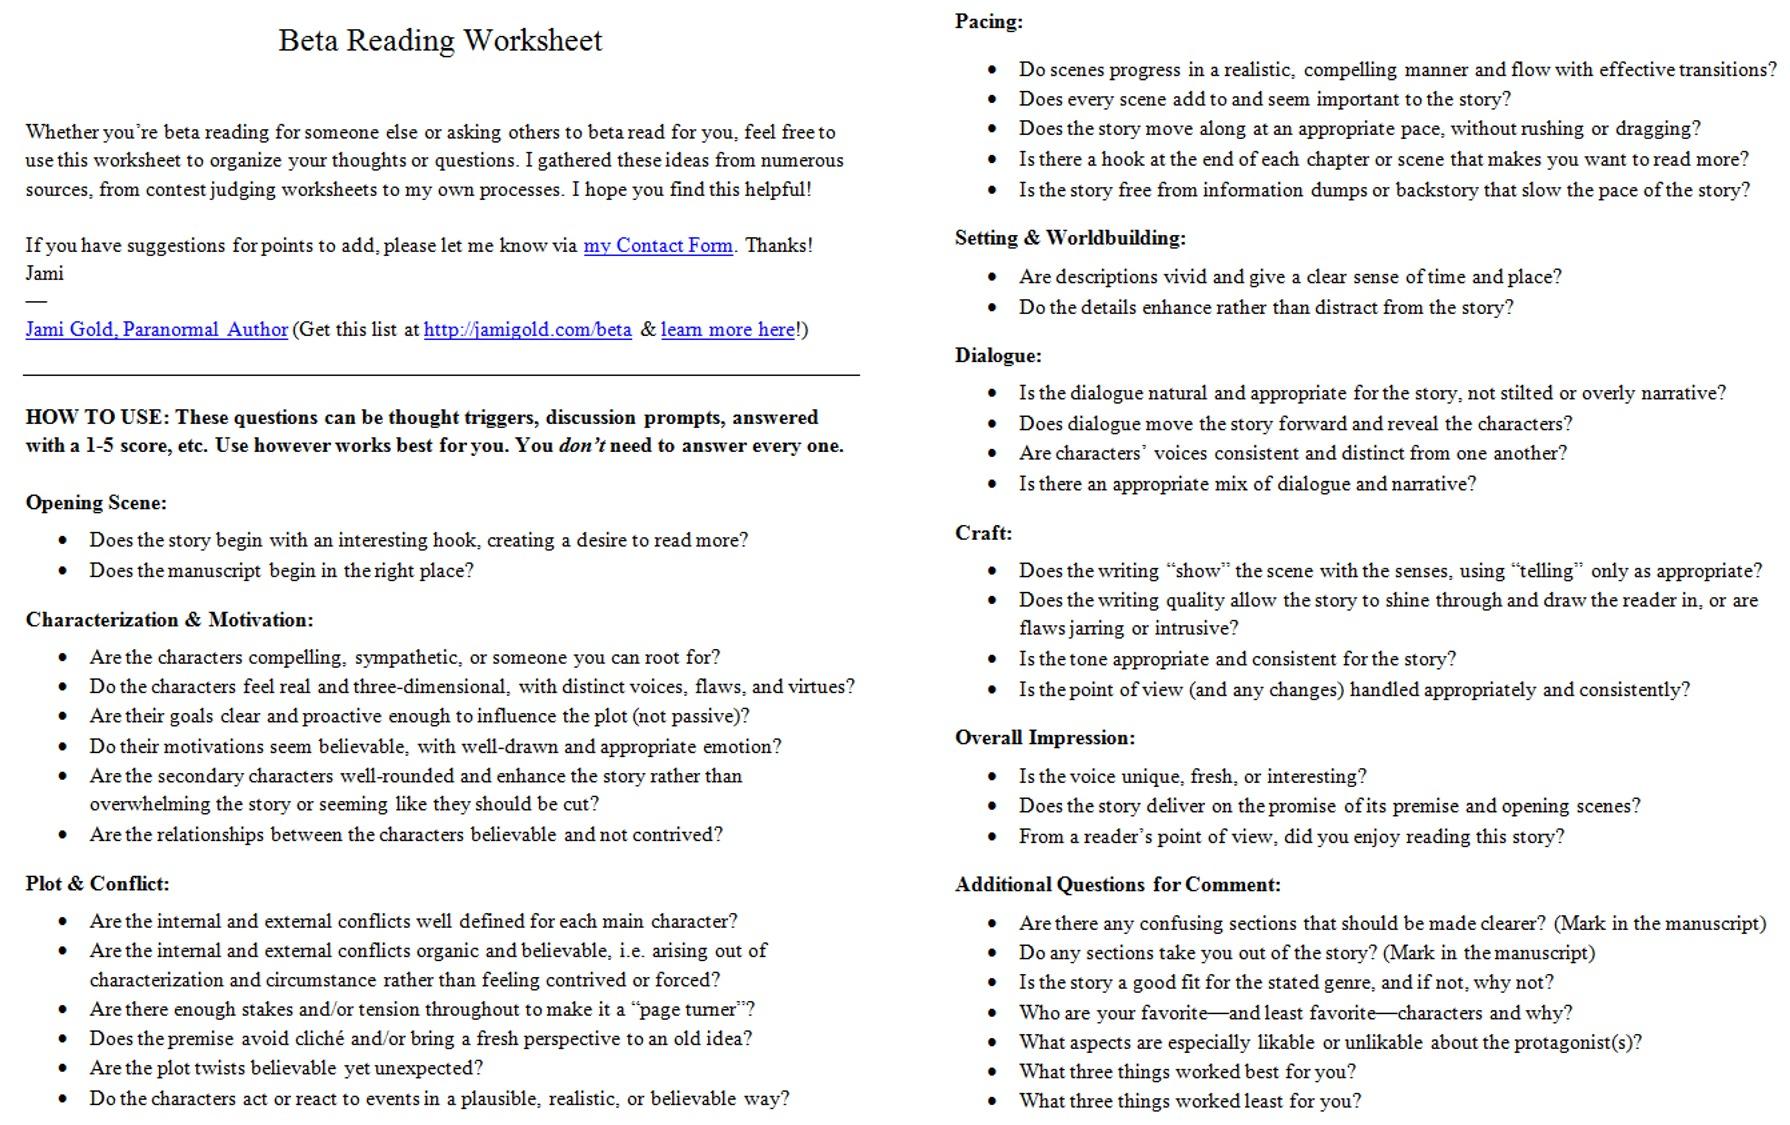 Weirdmailus  Mesmerizing Worksheets For Writers  Jami Gold Paranormal Author With Likable Screen Shot Of The Twopage Beta Reading Worksheet With Astounding Contraction Worksheets Th Grade Also Water Cycle Activities Worksheets In Addition Directed Numbers Worksheets And English Grammar Worksheet For Grade  As Well As Prepositions Worksheets For Class  Additionally Fun Addition Worksheets For Nd Grade From Jamigoldcom With Weirdmailus  Likable Worksheets For Writers  Jami Gold Paranormal Author With Astounding Screen Shot Of The Twopage Beta Reading Worksheet And Mesmerizing Contraction Worksheets Th Grade Also Water Cycle Activities Worksheets In Addition Directed Numbers Worksheets From Jamigoldcom